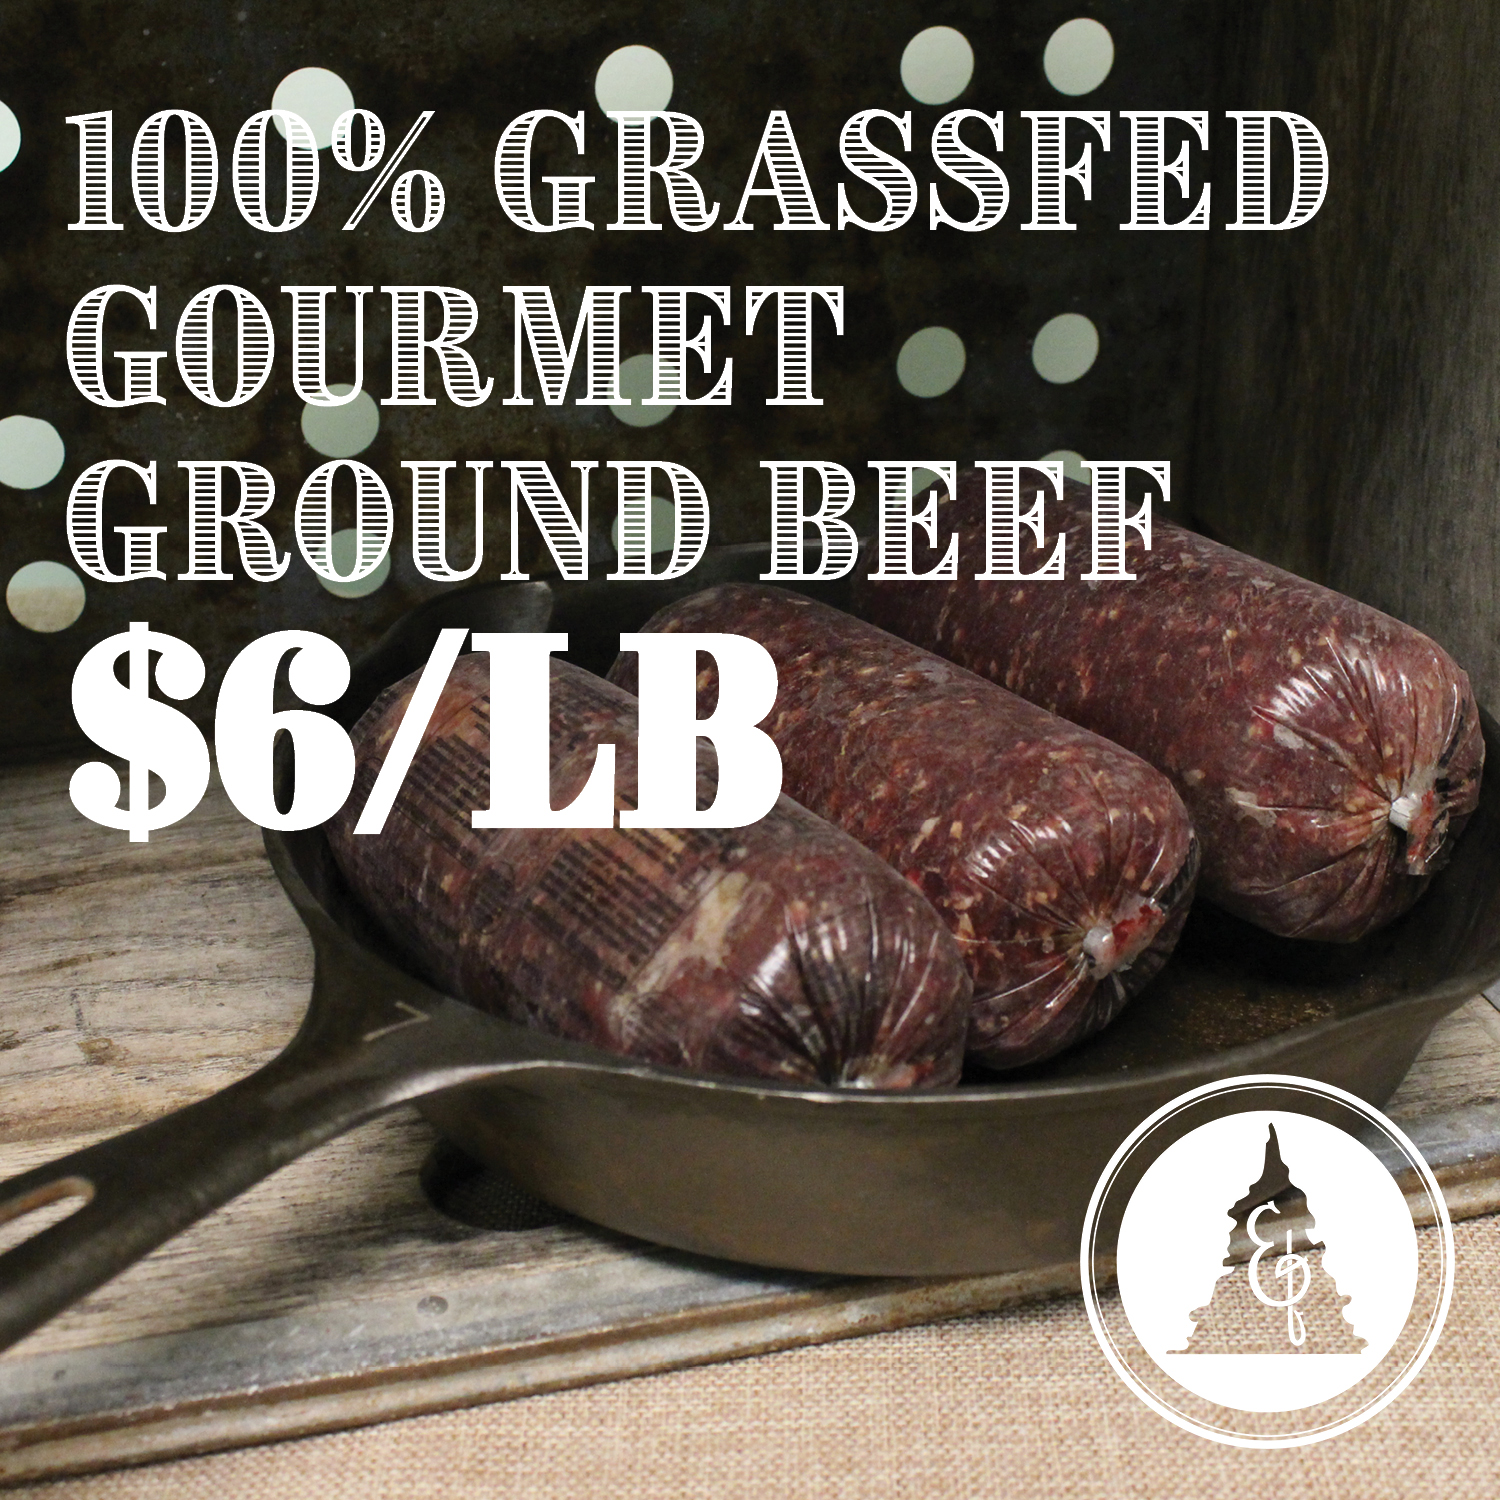 grassfed gourmet ground beef .jpg